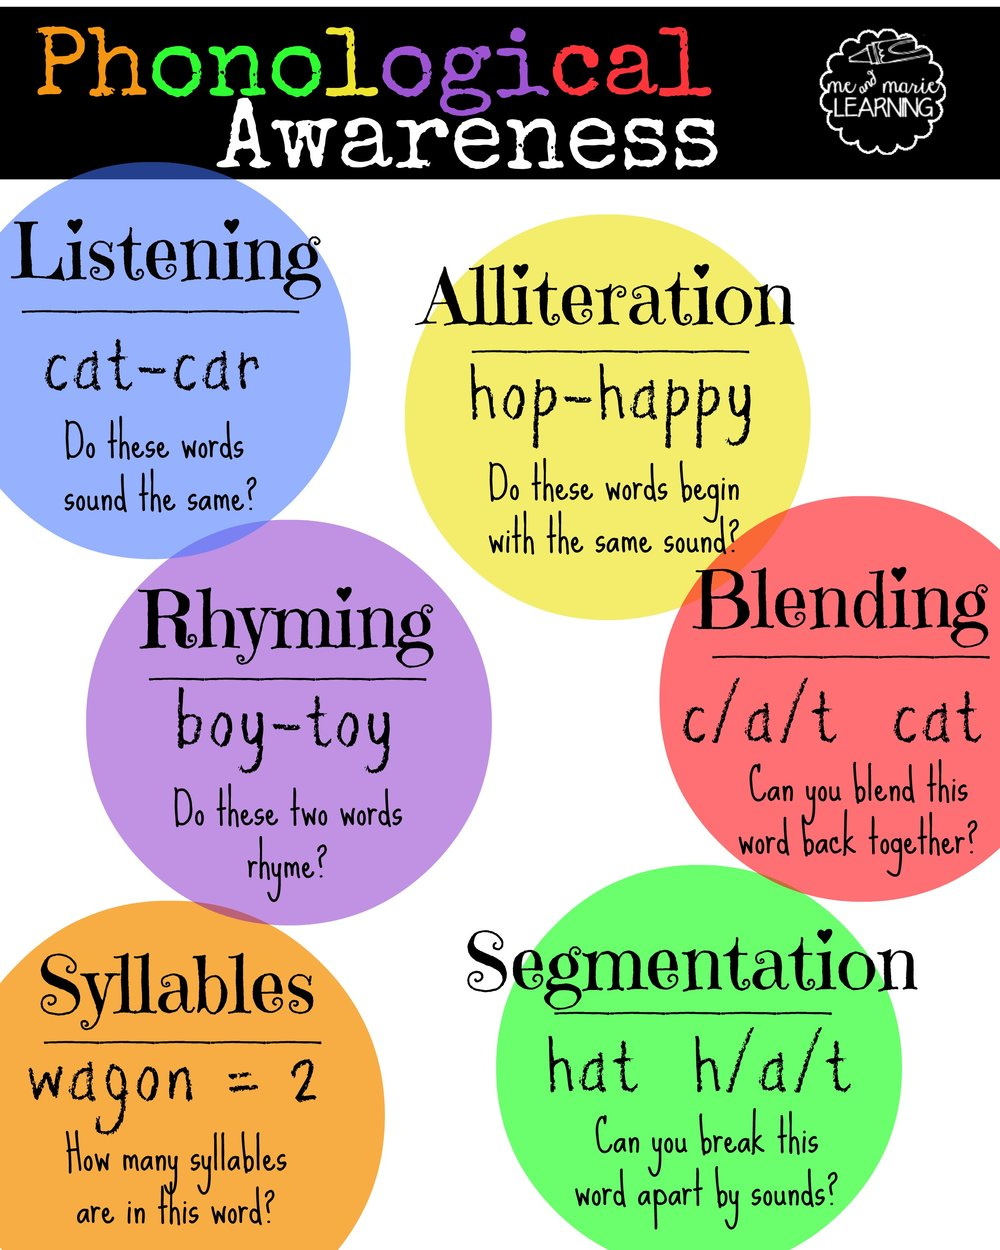 phonological-awareness.jpg